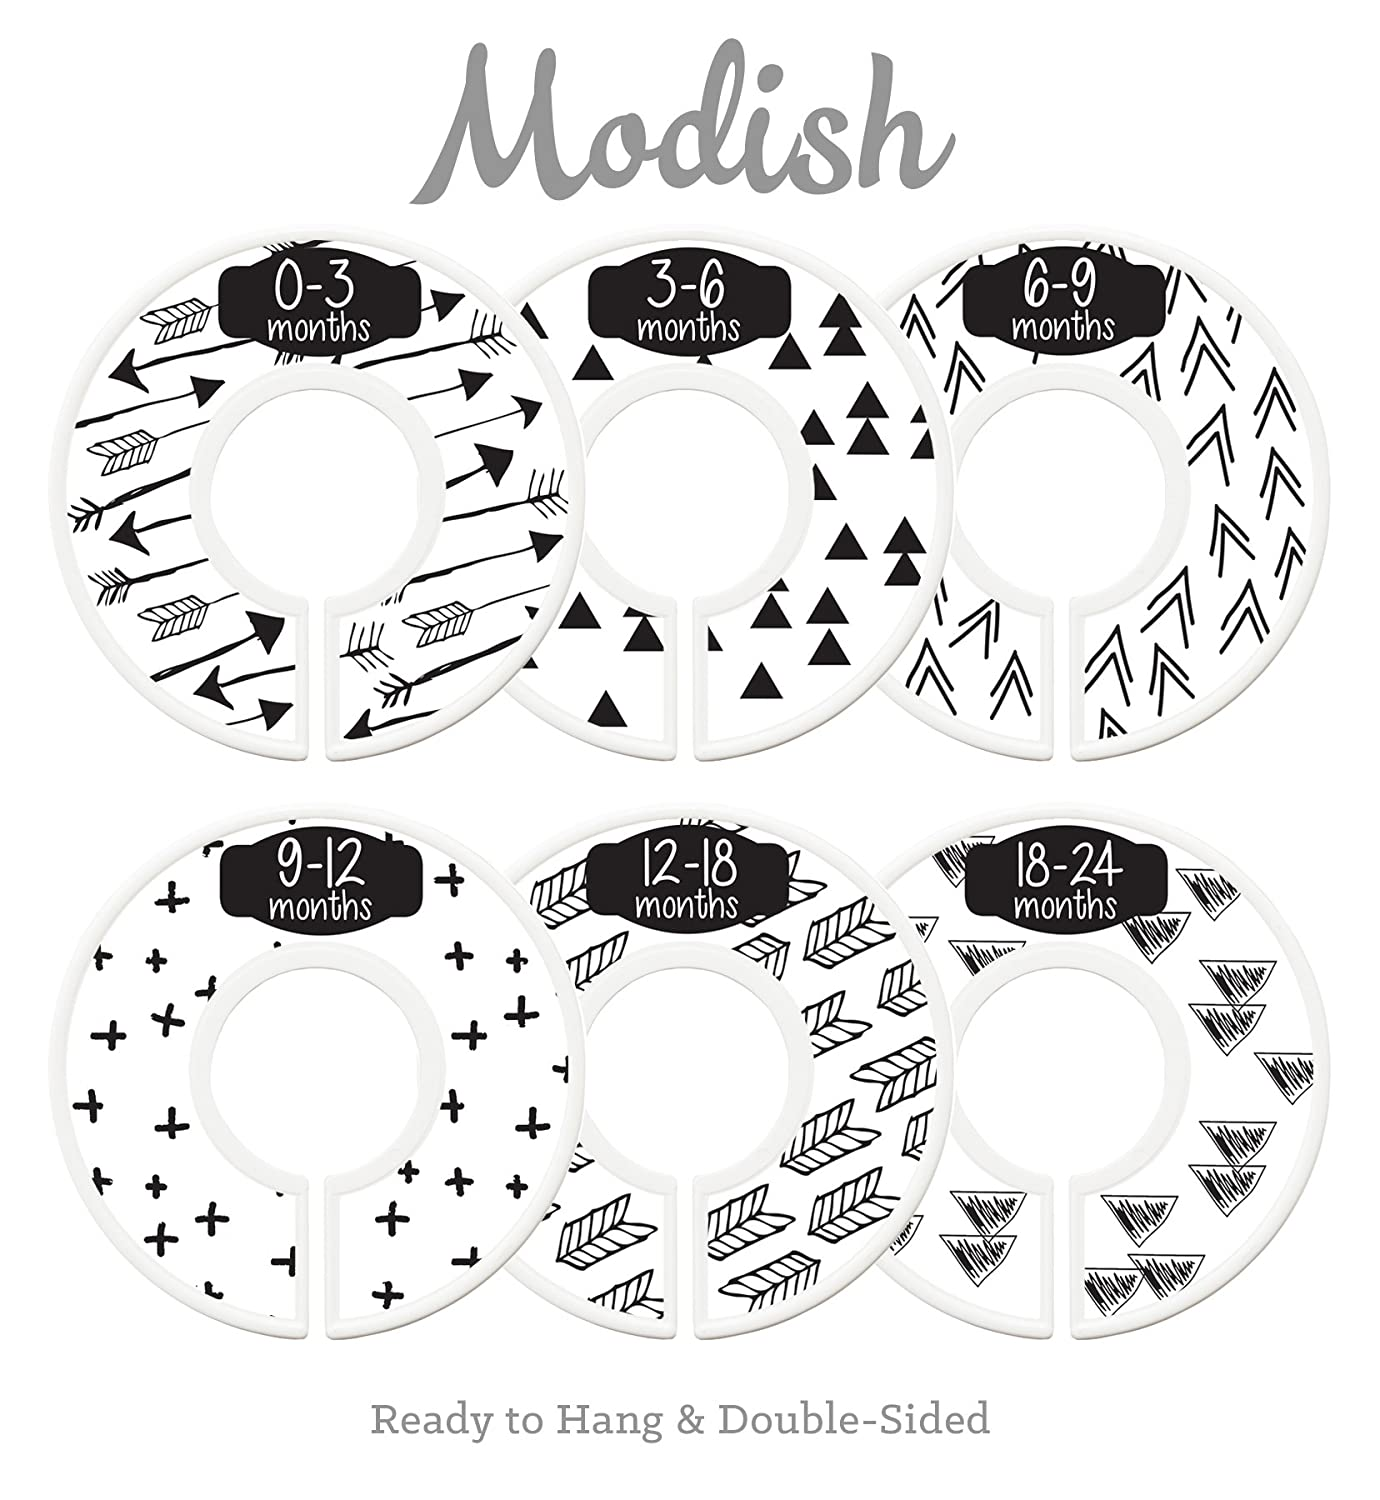 Modish Labels Baby Nursery Closet Dividers, Closet Organizers, Nursery Decor, Gender Neutral, Baby Boy, Baby Girl, Tribal, Arrows, Triangles, Boho Geometric, Nordic, Black, White (Black & White) Inc. 687847979708